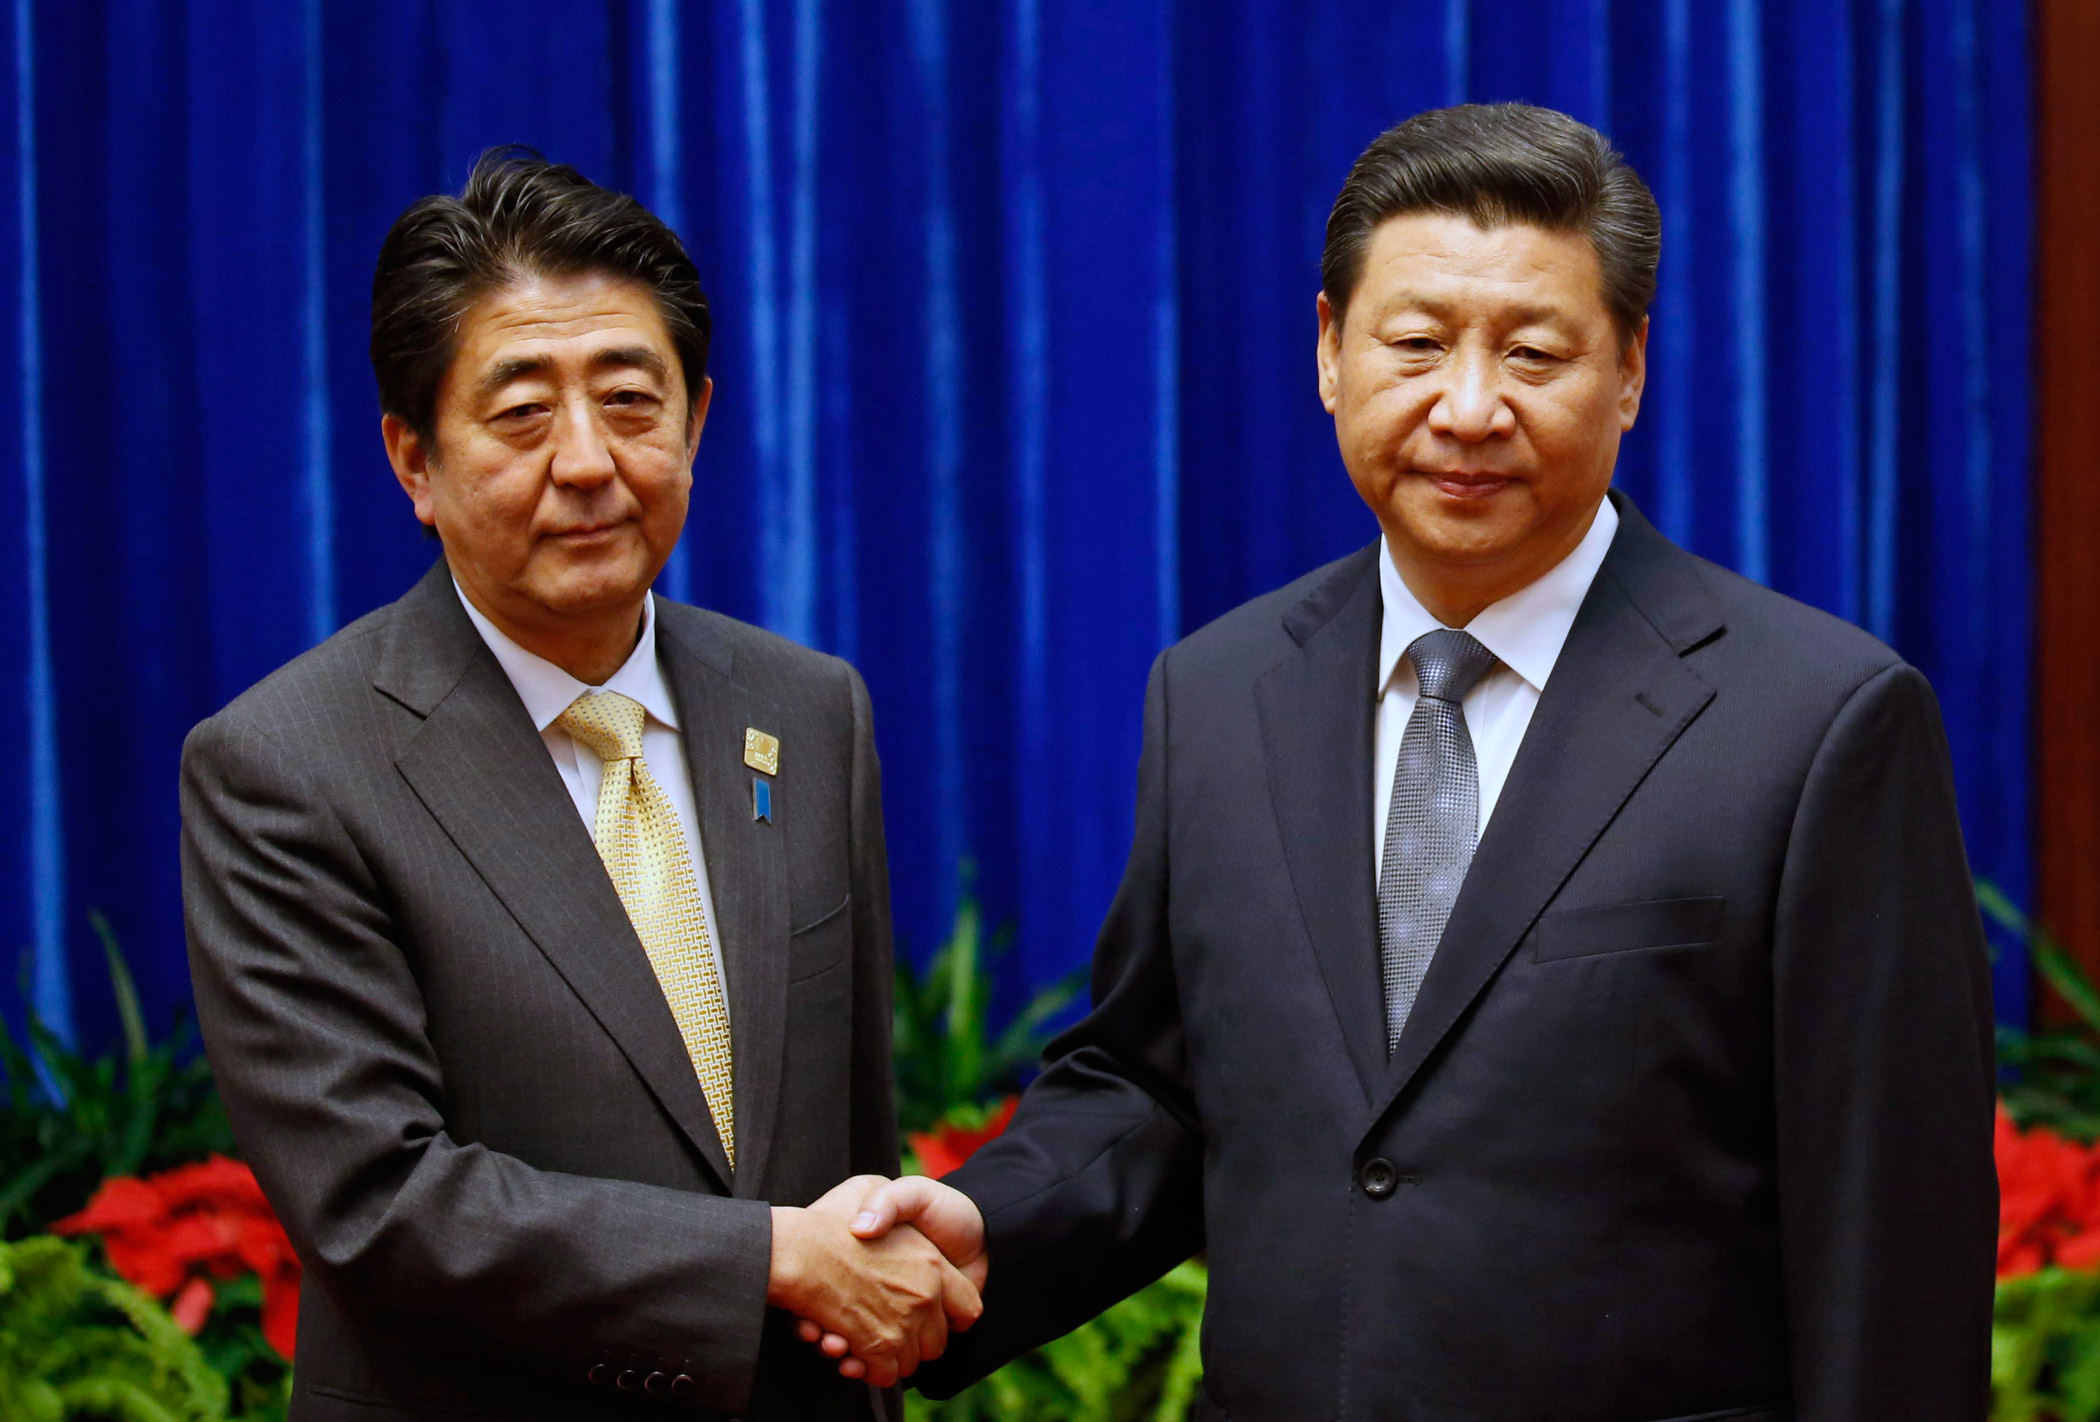 Chinese President Xi Jinping, right, shakes hands with Japanese Prime Minister Shinzo Abe, during their meeting on the sidelines of the Asia Pacific Economic Cooperation (APEC) meetings on Nov. 10, 2014 in Beijing.